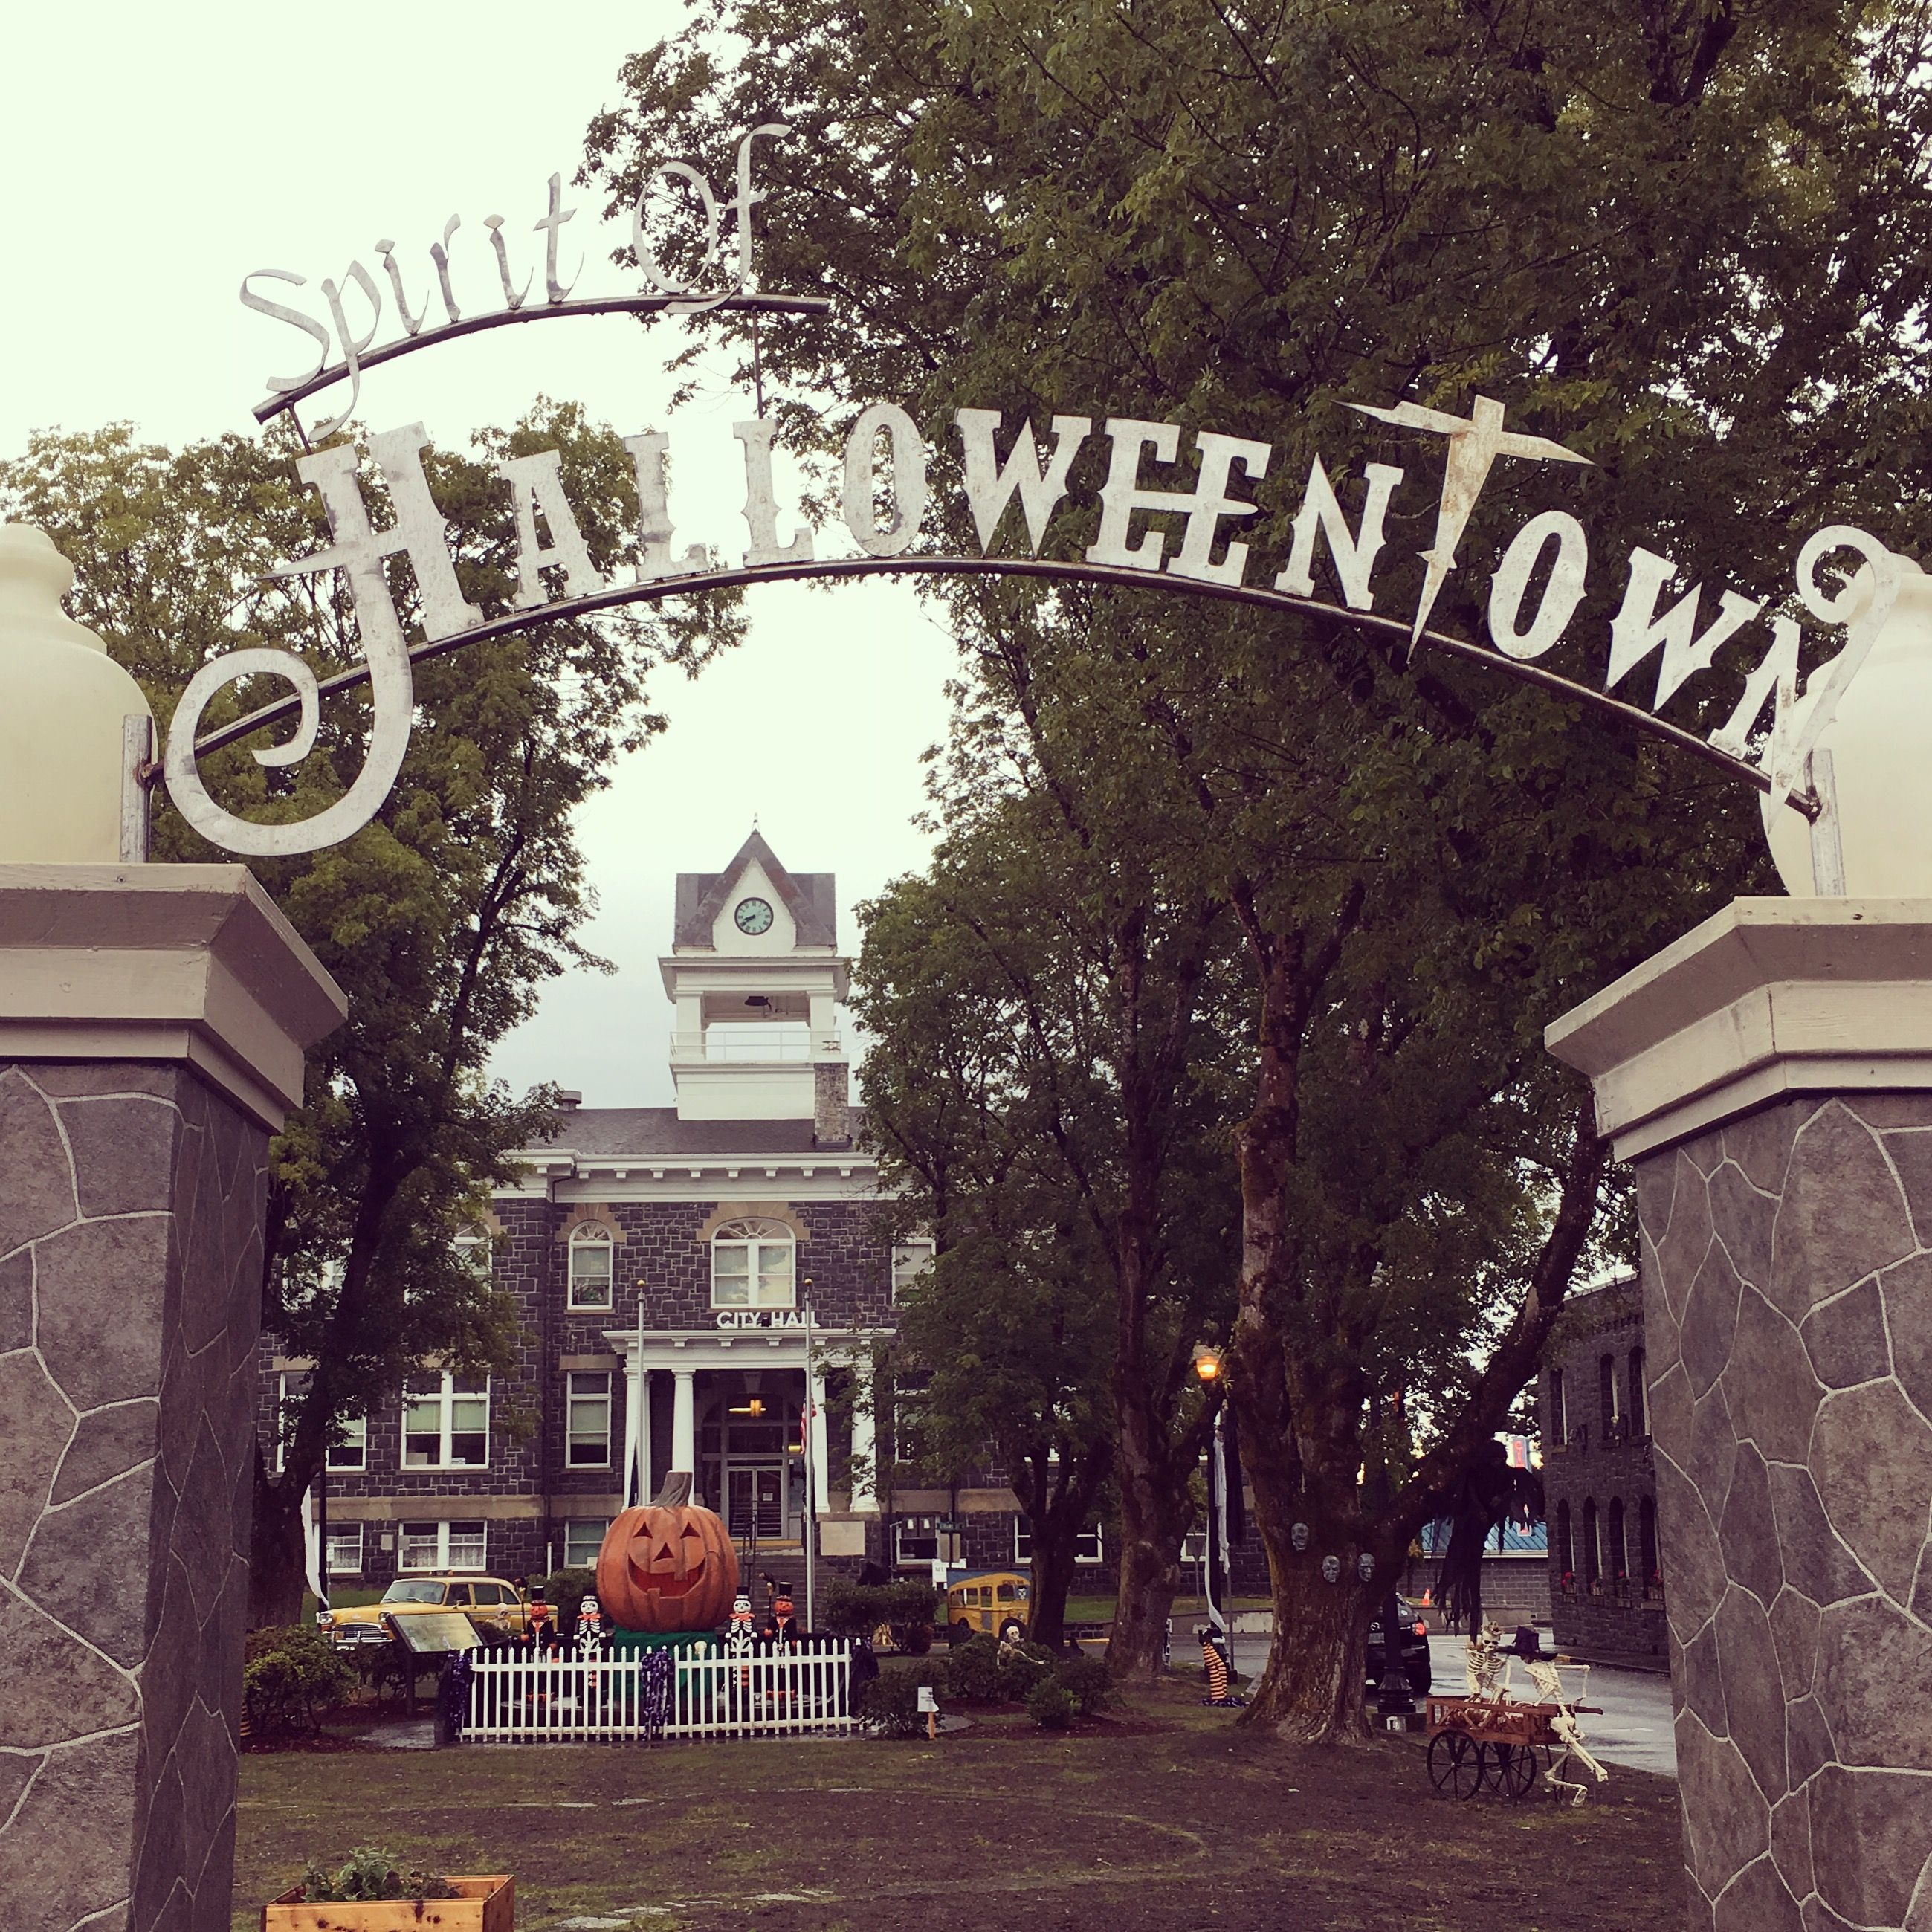 Halloween Car Cruise In St. Helens Or 2020 Halloweentown is St. Helens, Oregon! | Halloween town, St helens